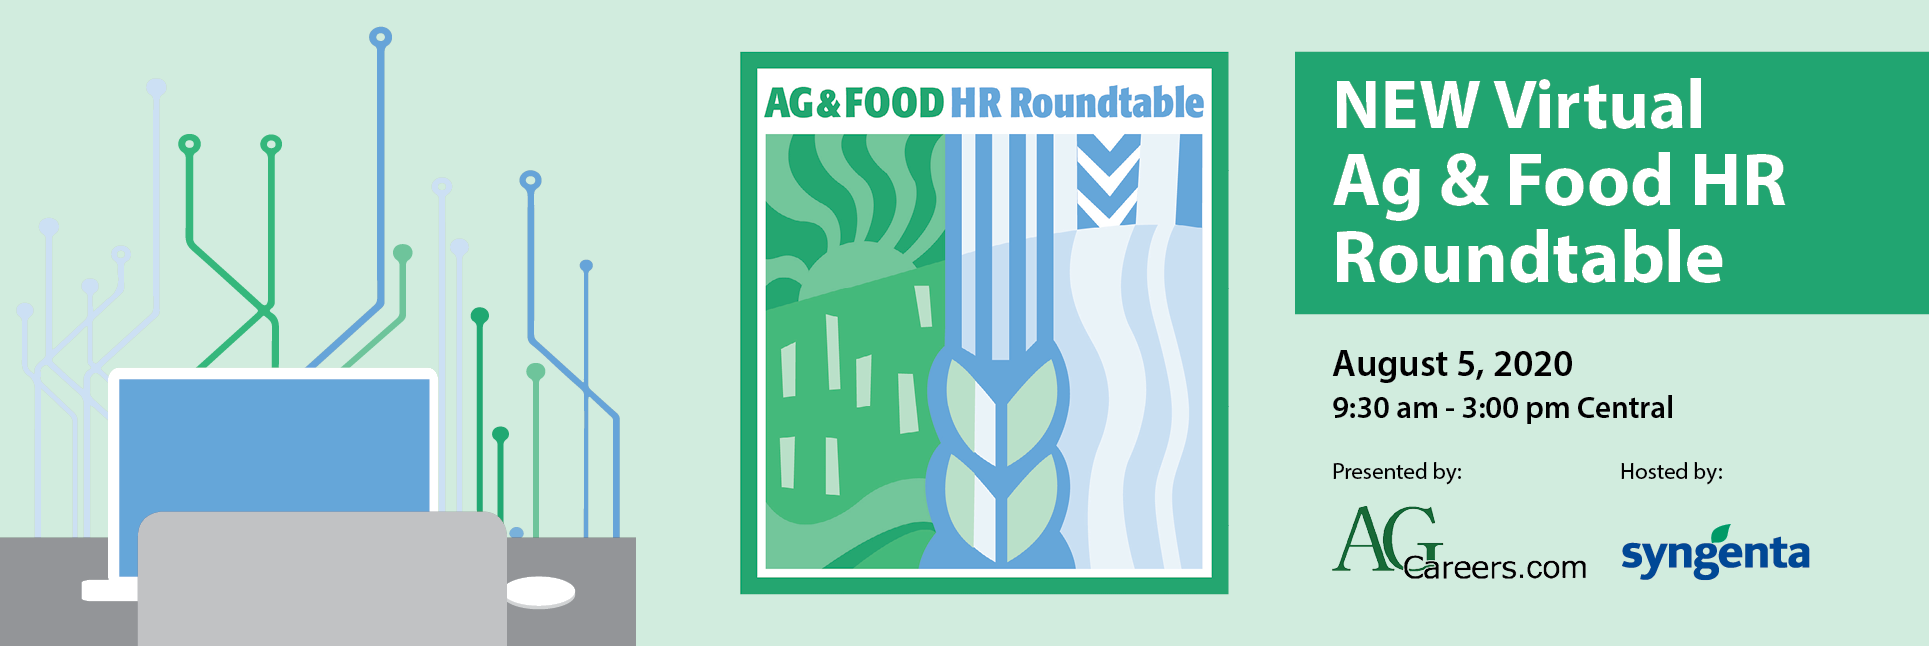 2020 VIRTUAL North American Ag & Food HR Roundtable